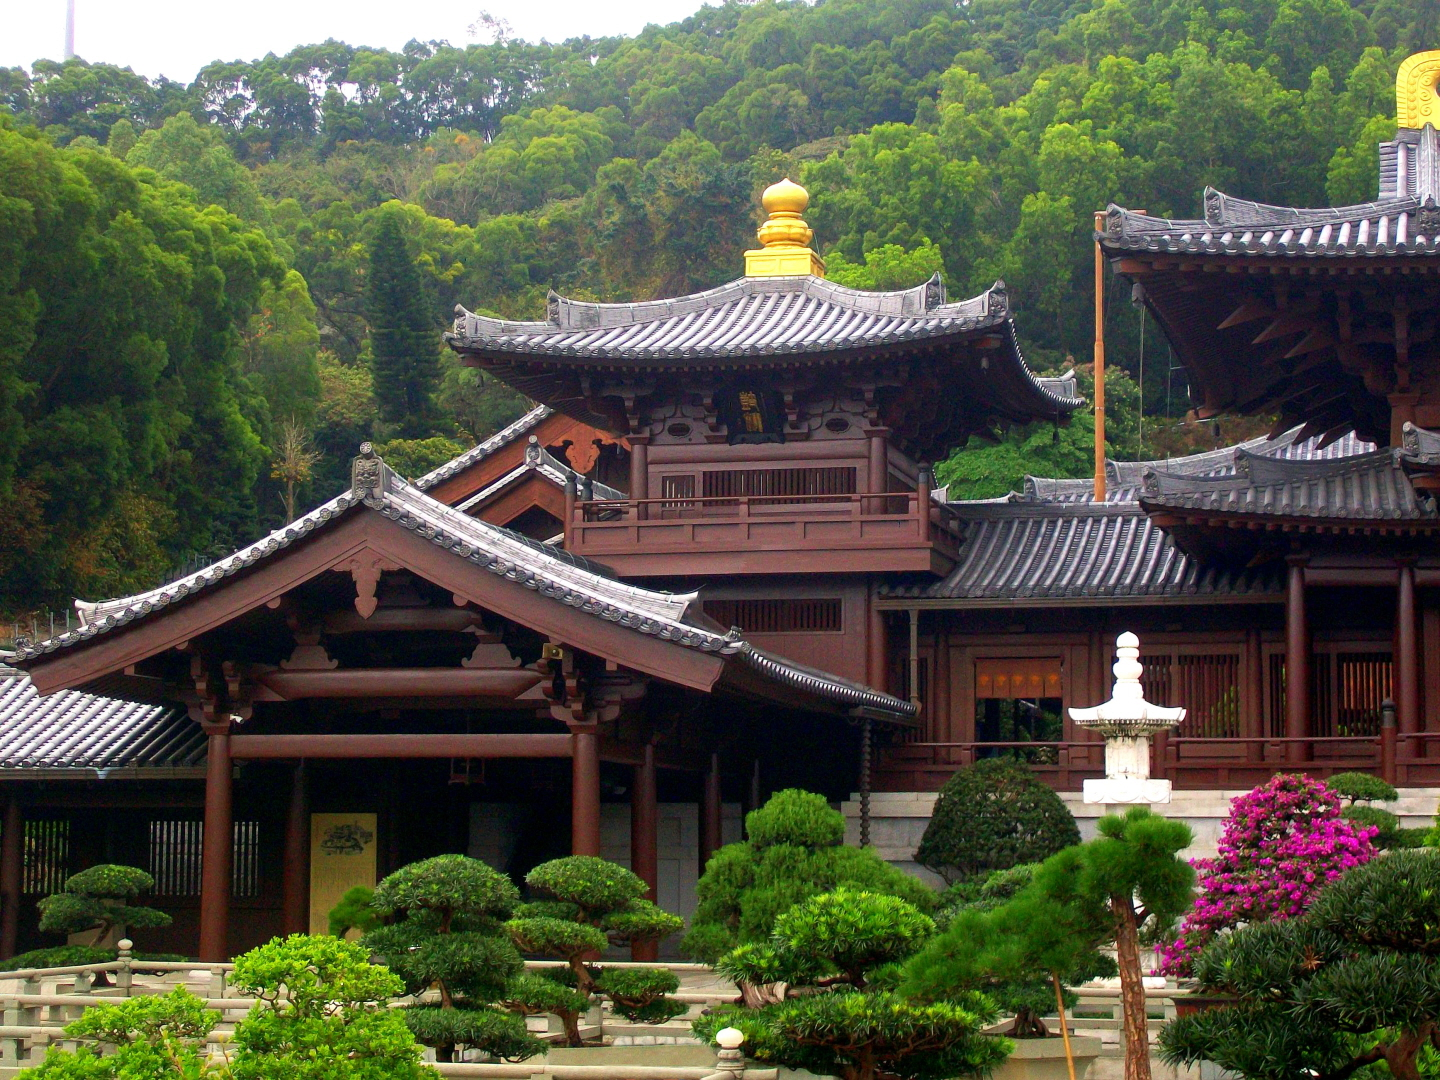 Absolutely Stunning with Lovely Gardens -Chi Lin Buddhist Nunnery - Kowloon Island off of Hong Kong